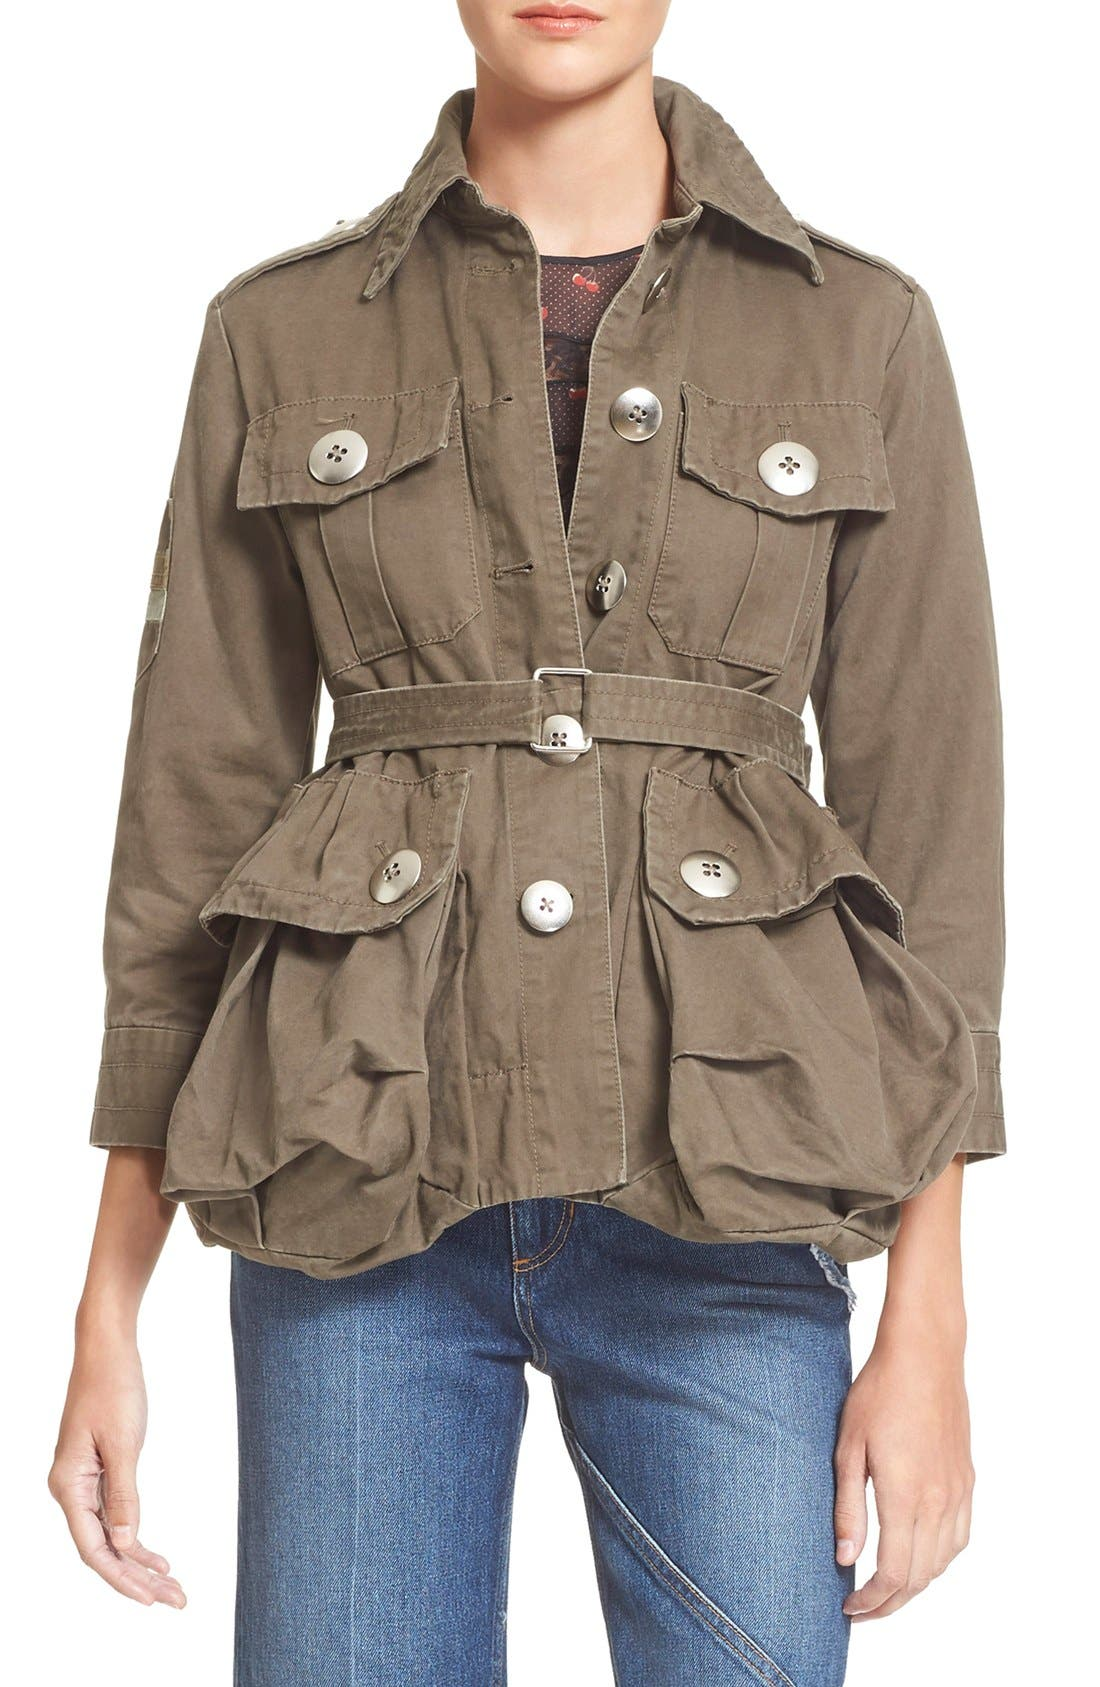 Alternate Image 1 Selected - MARC BY MARC JACOBS Cotton Twill Military Jacket